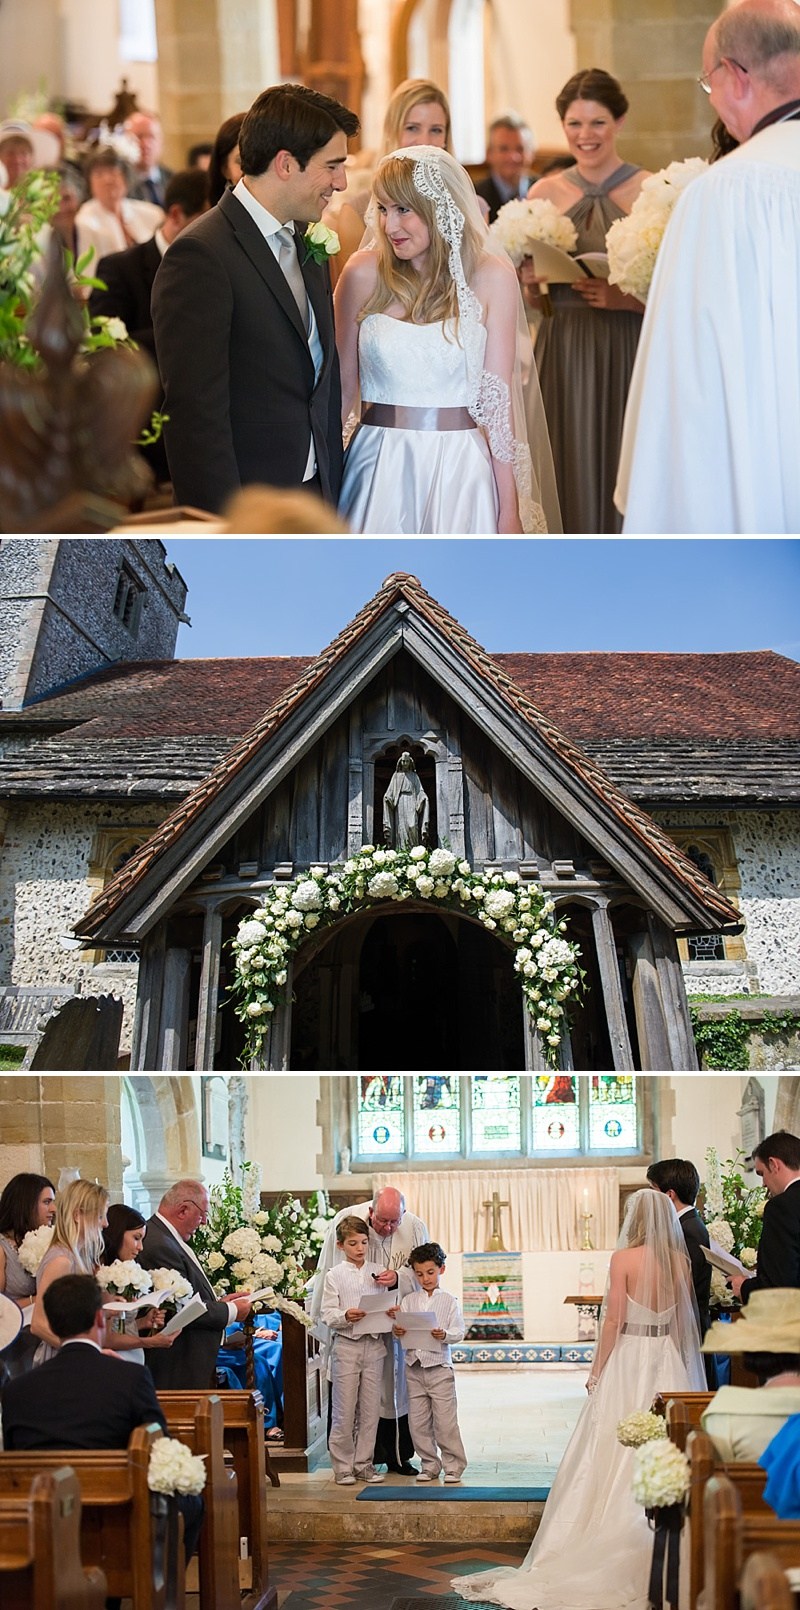 Ivory And Grey Themed Wedding At Birling Manor, Sussex, Bride In Opulence by Suzanne Neville, Images By Especially Amy_0003